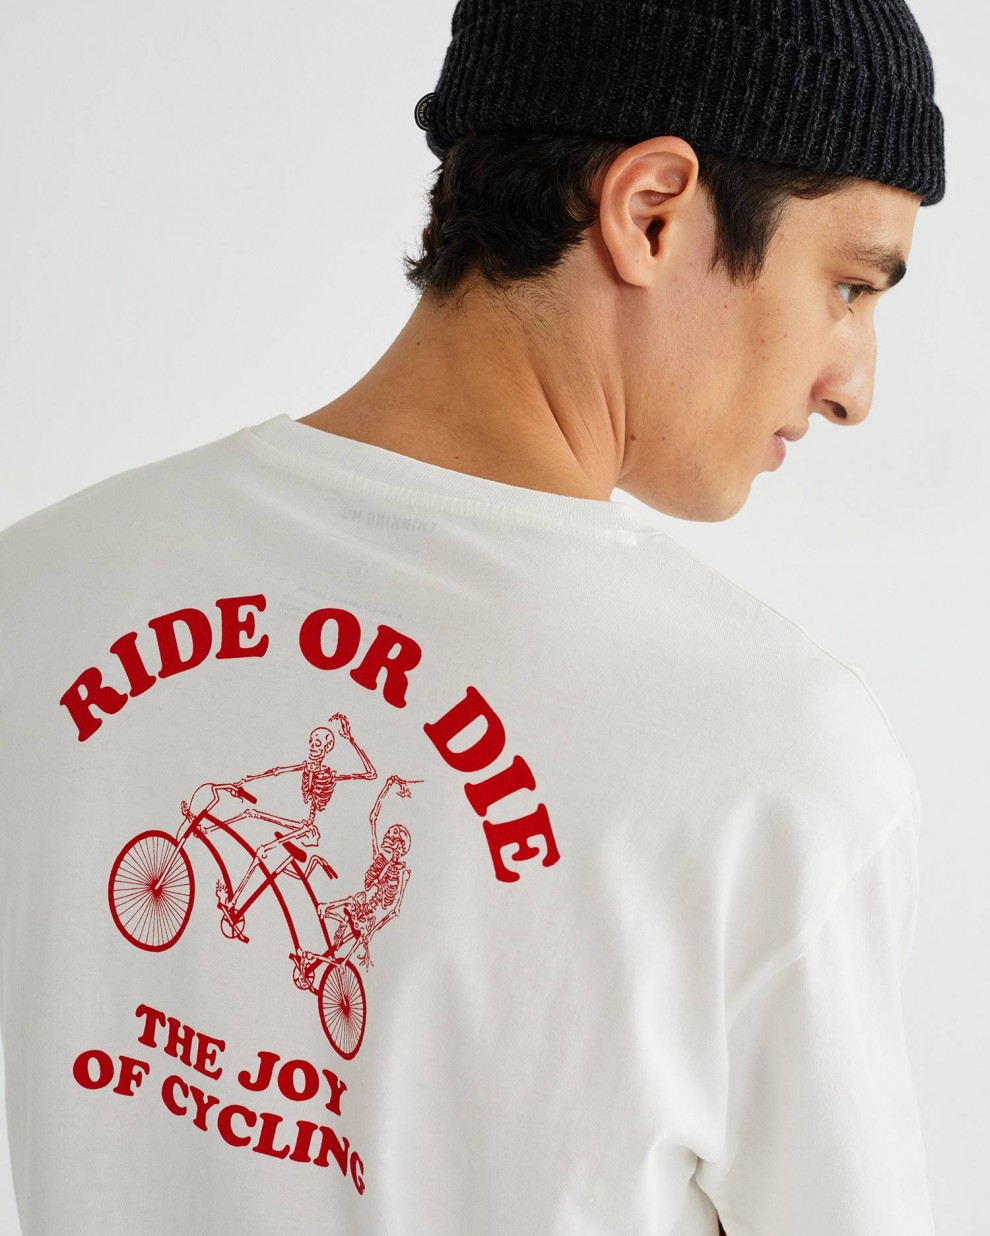 JOY OF CYCLING T-SHIRT